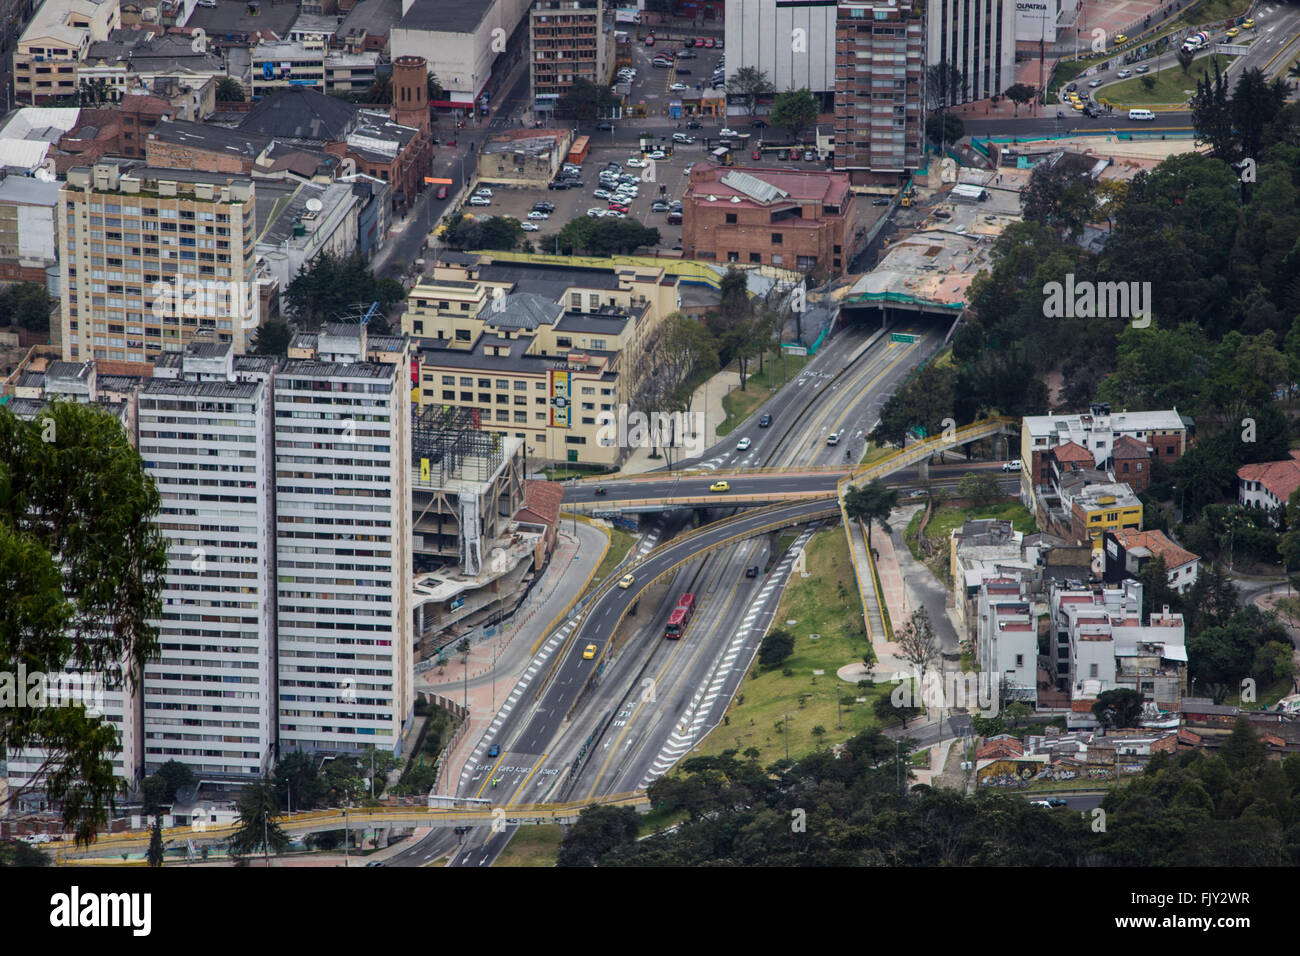 High Angle View Of Multiple Lane Highways Amidst Buildings In City - Stock Image